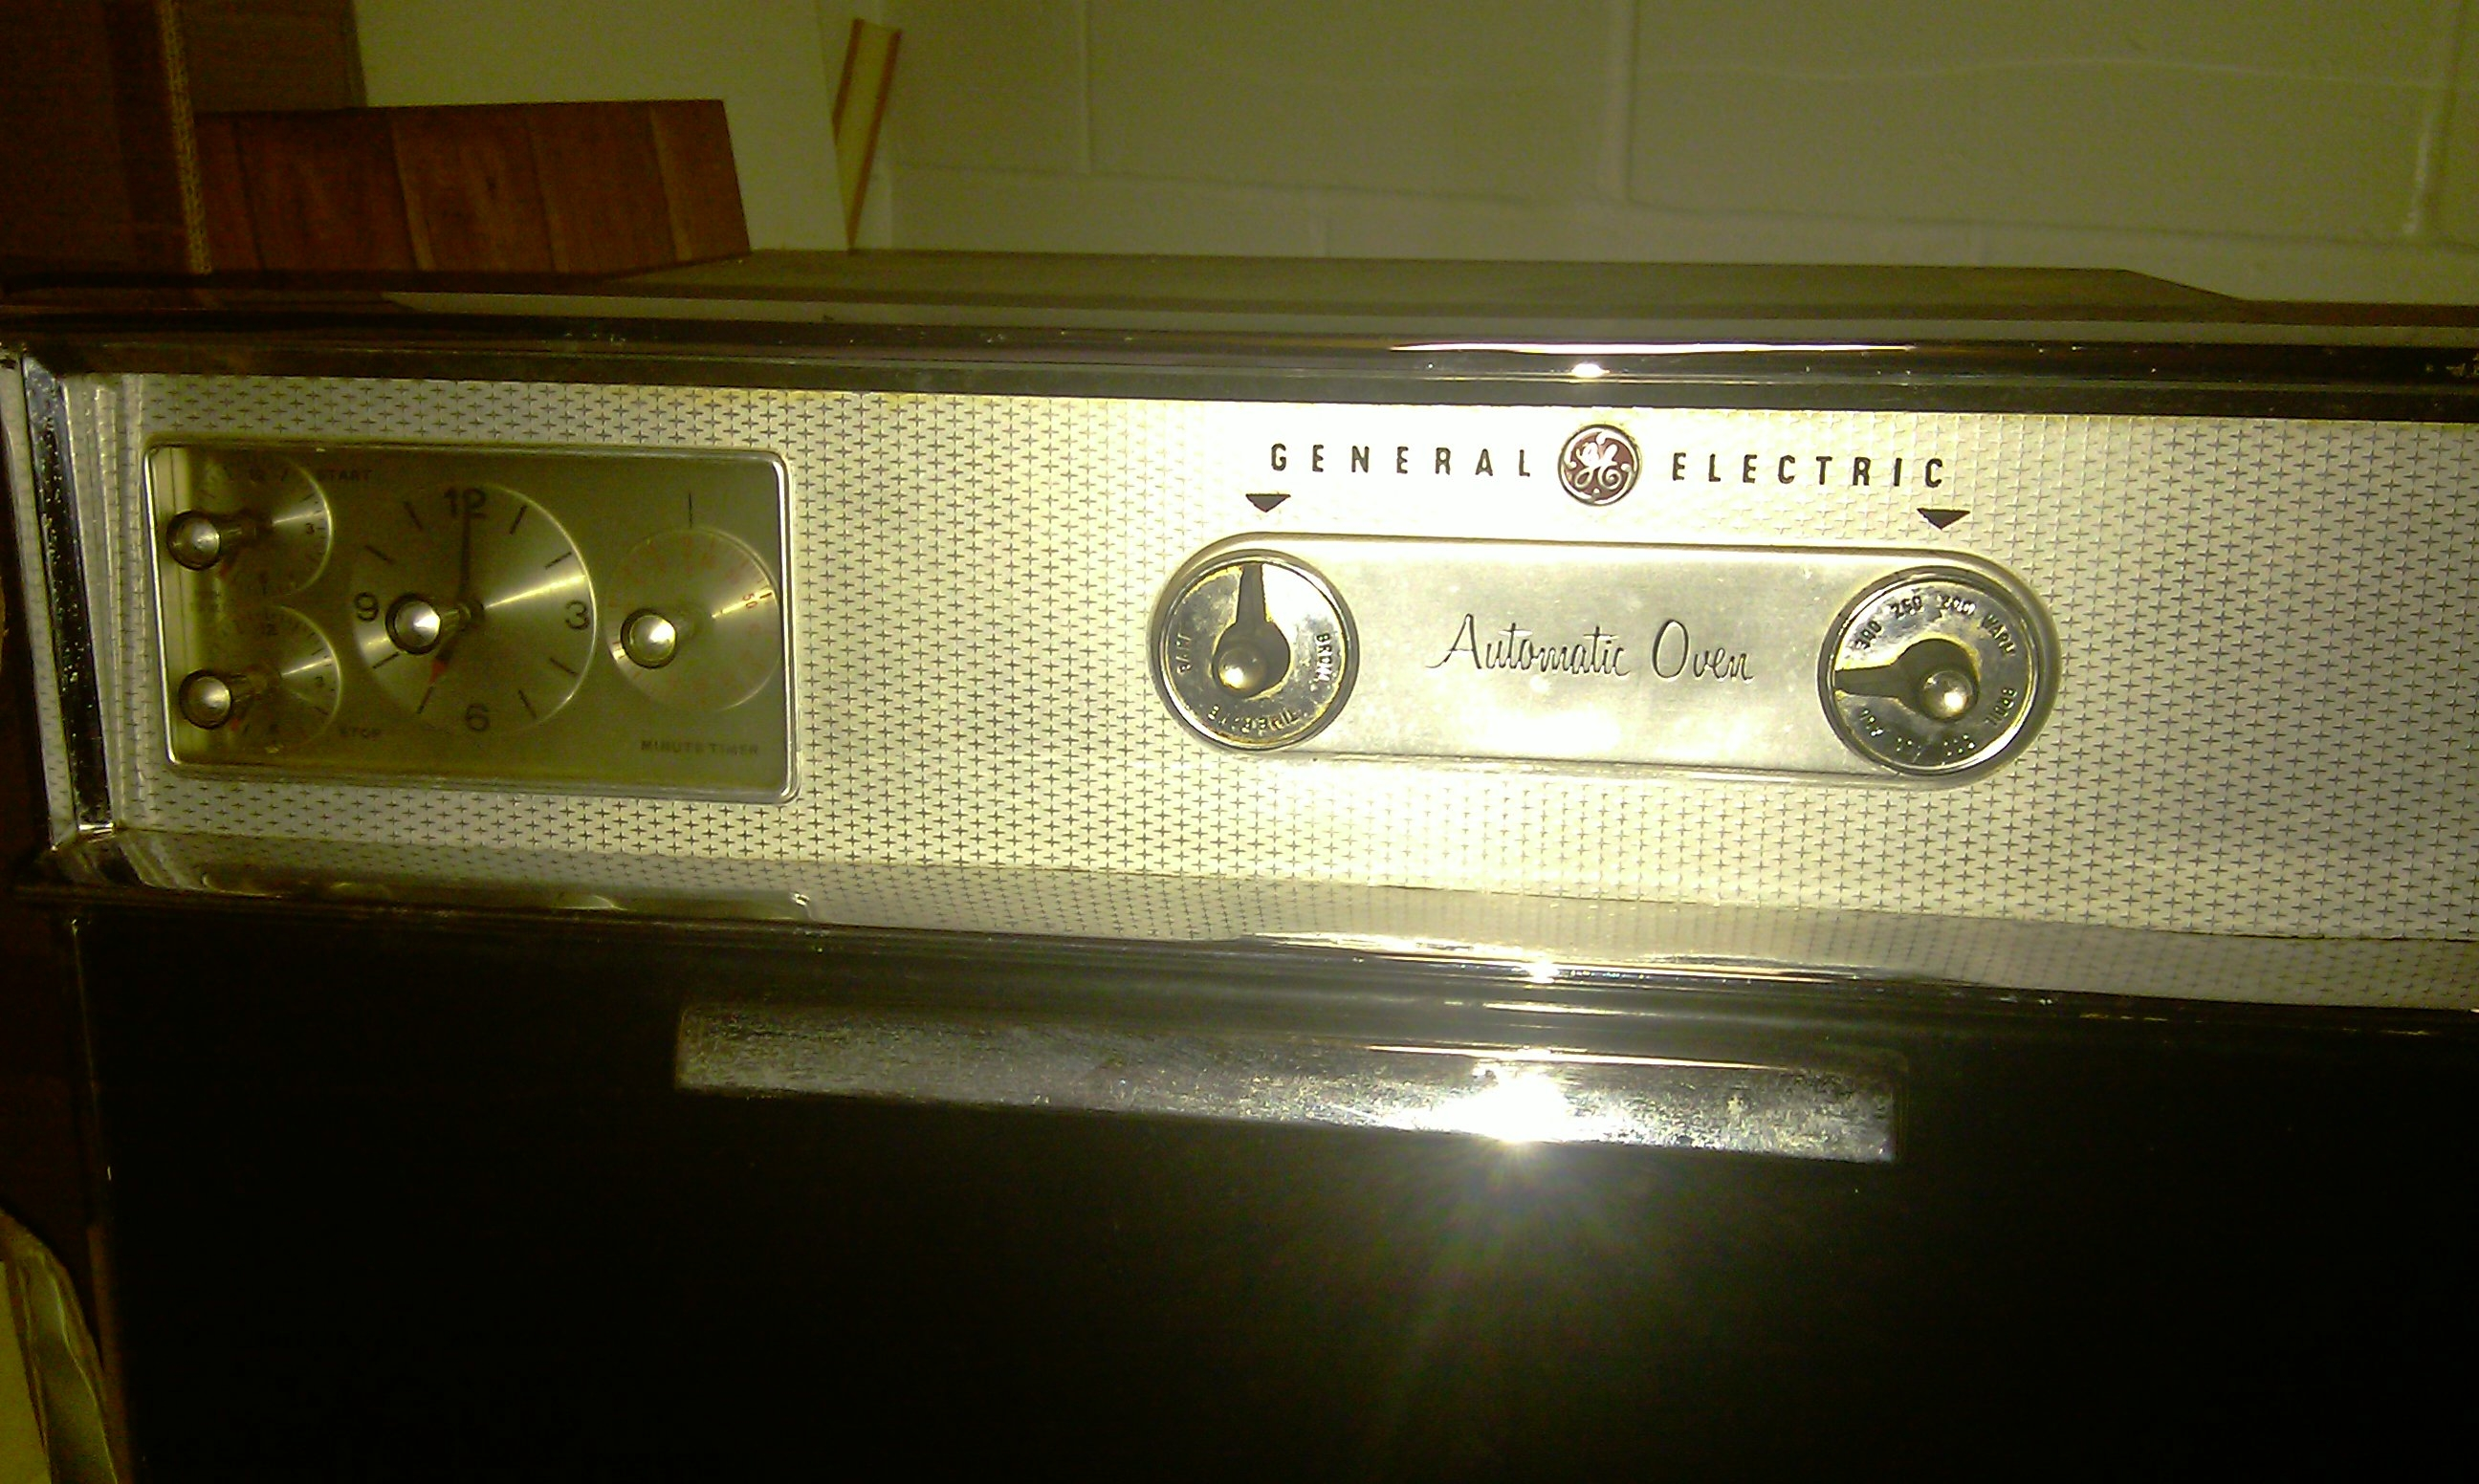 Old Electric Wall Oven Needed To